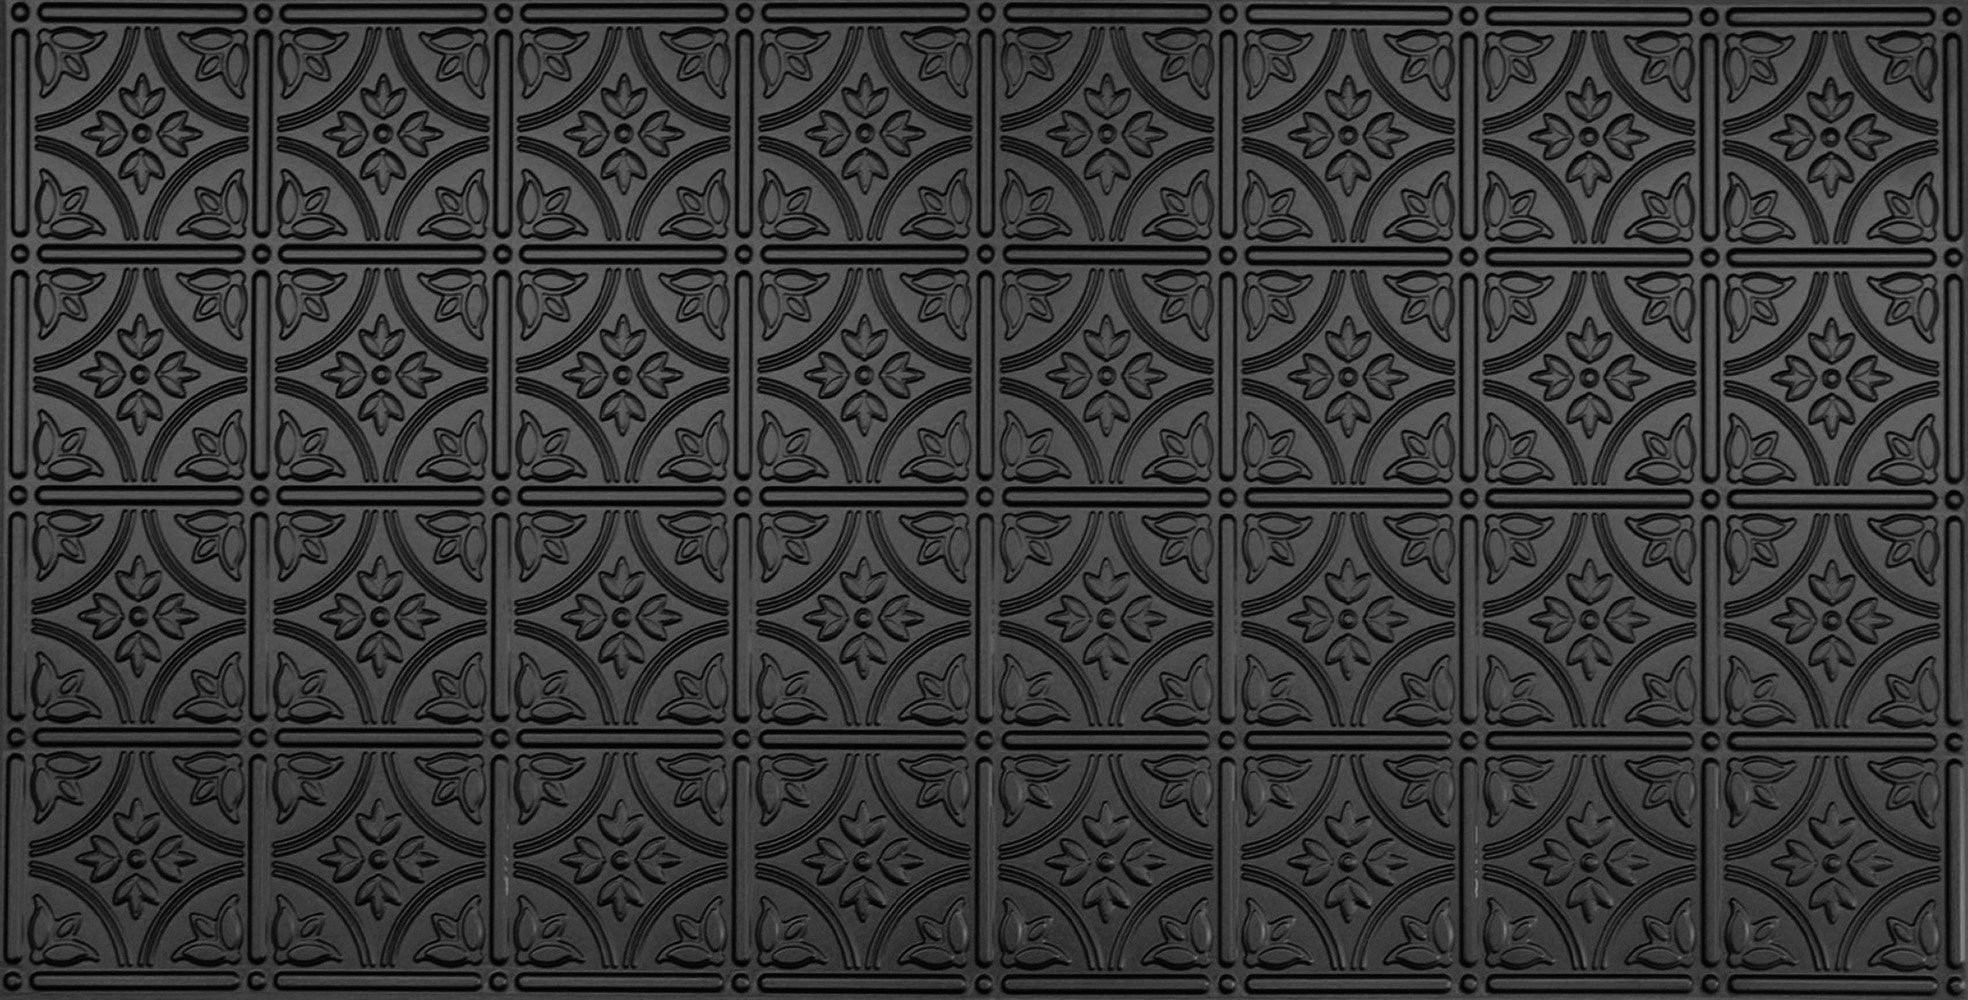 Global Specialty Products 209-06 Traditional Tin Style Panels For Glue-Up Installation, Matte Black